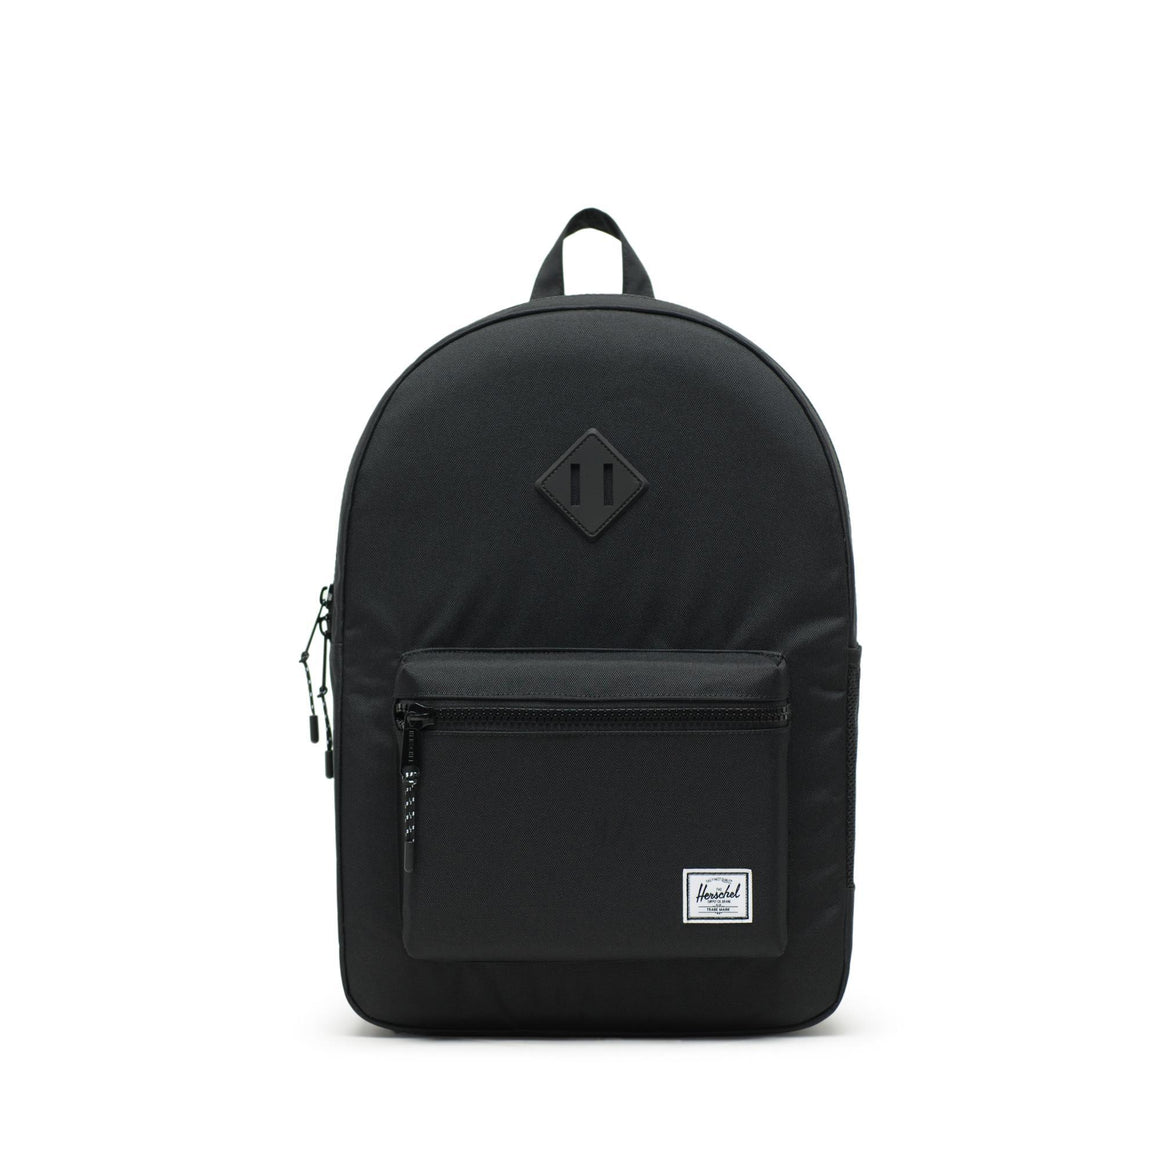 10560-00155-OS-Herschel Heritage Youth XL 20 L Backpack - Black Rubber Backpack Herschel